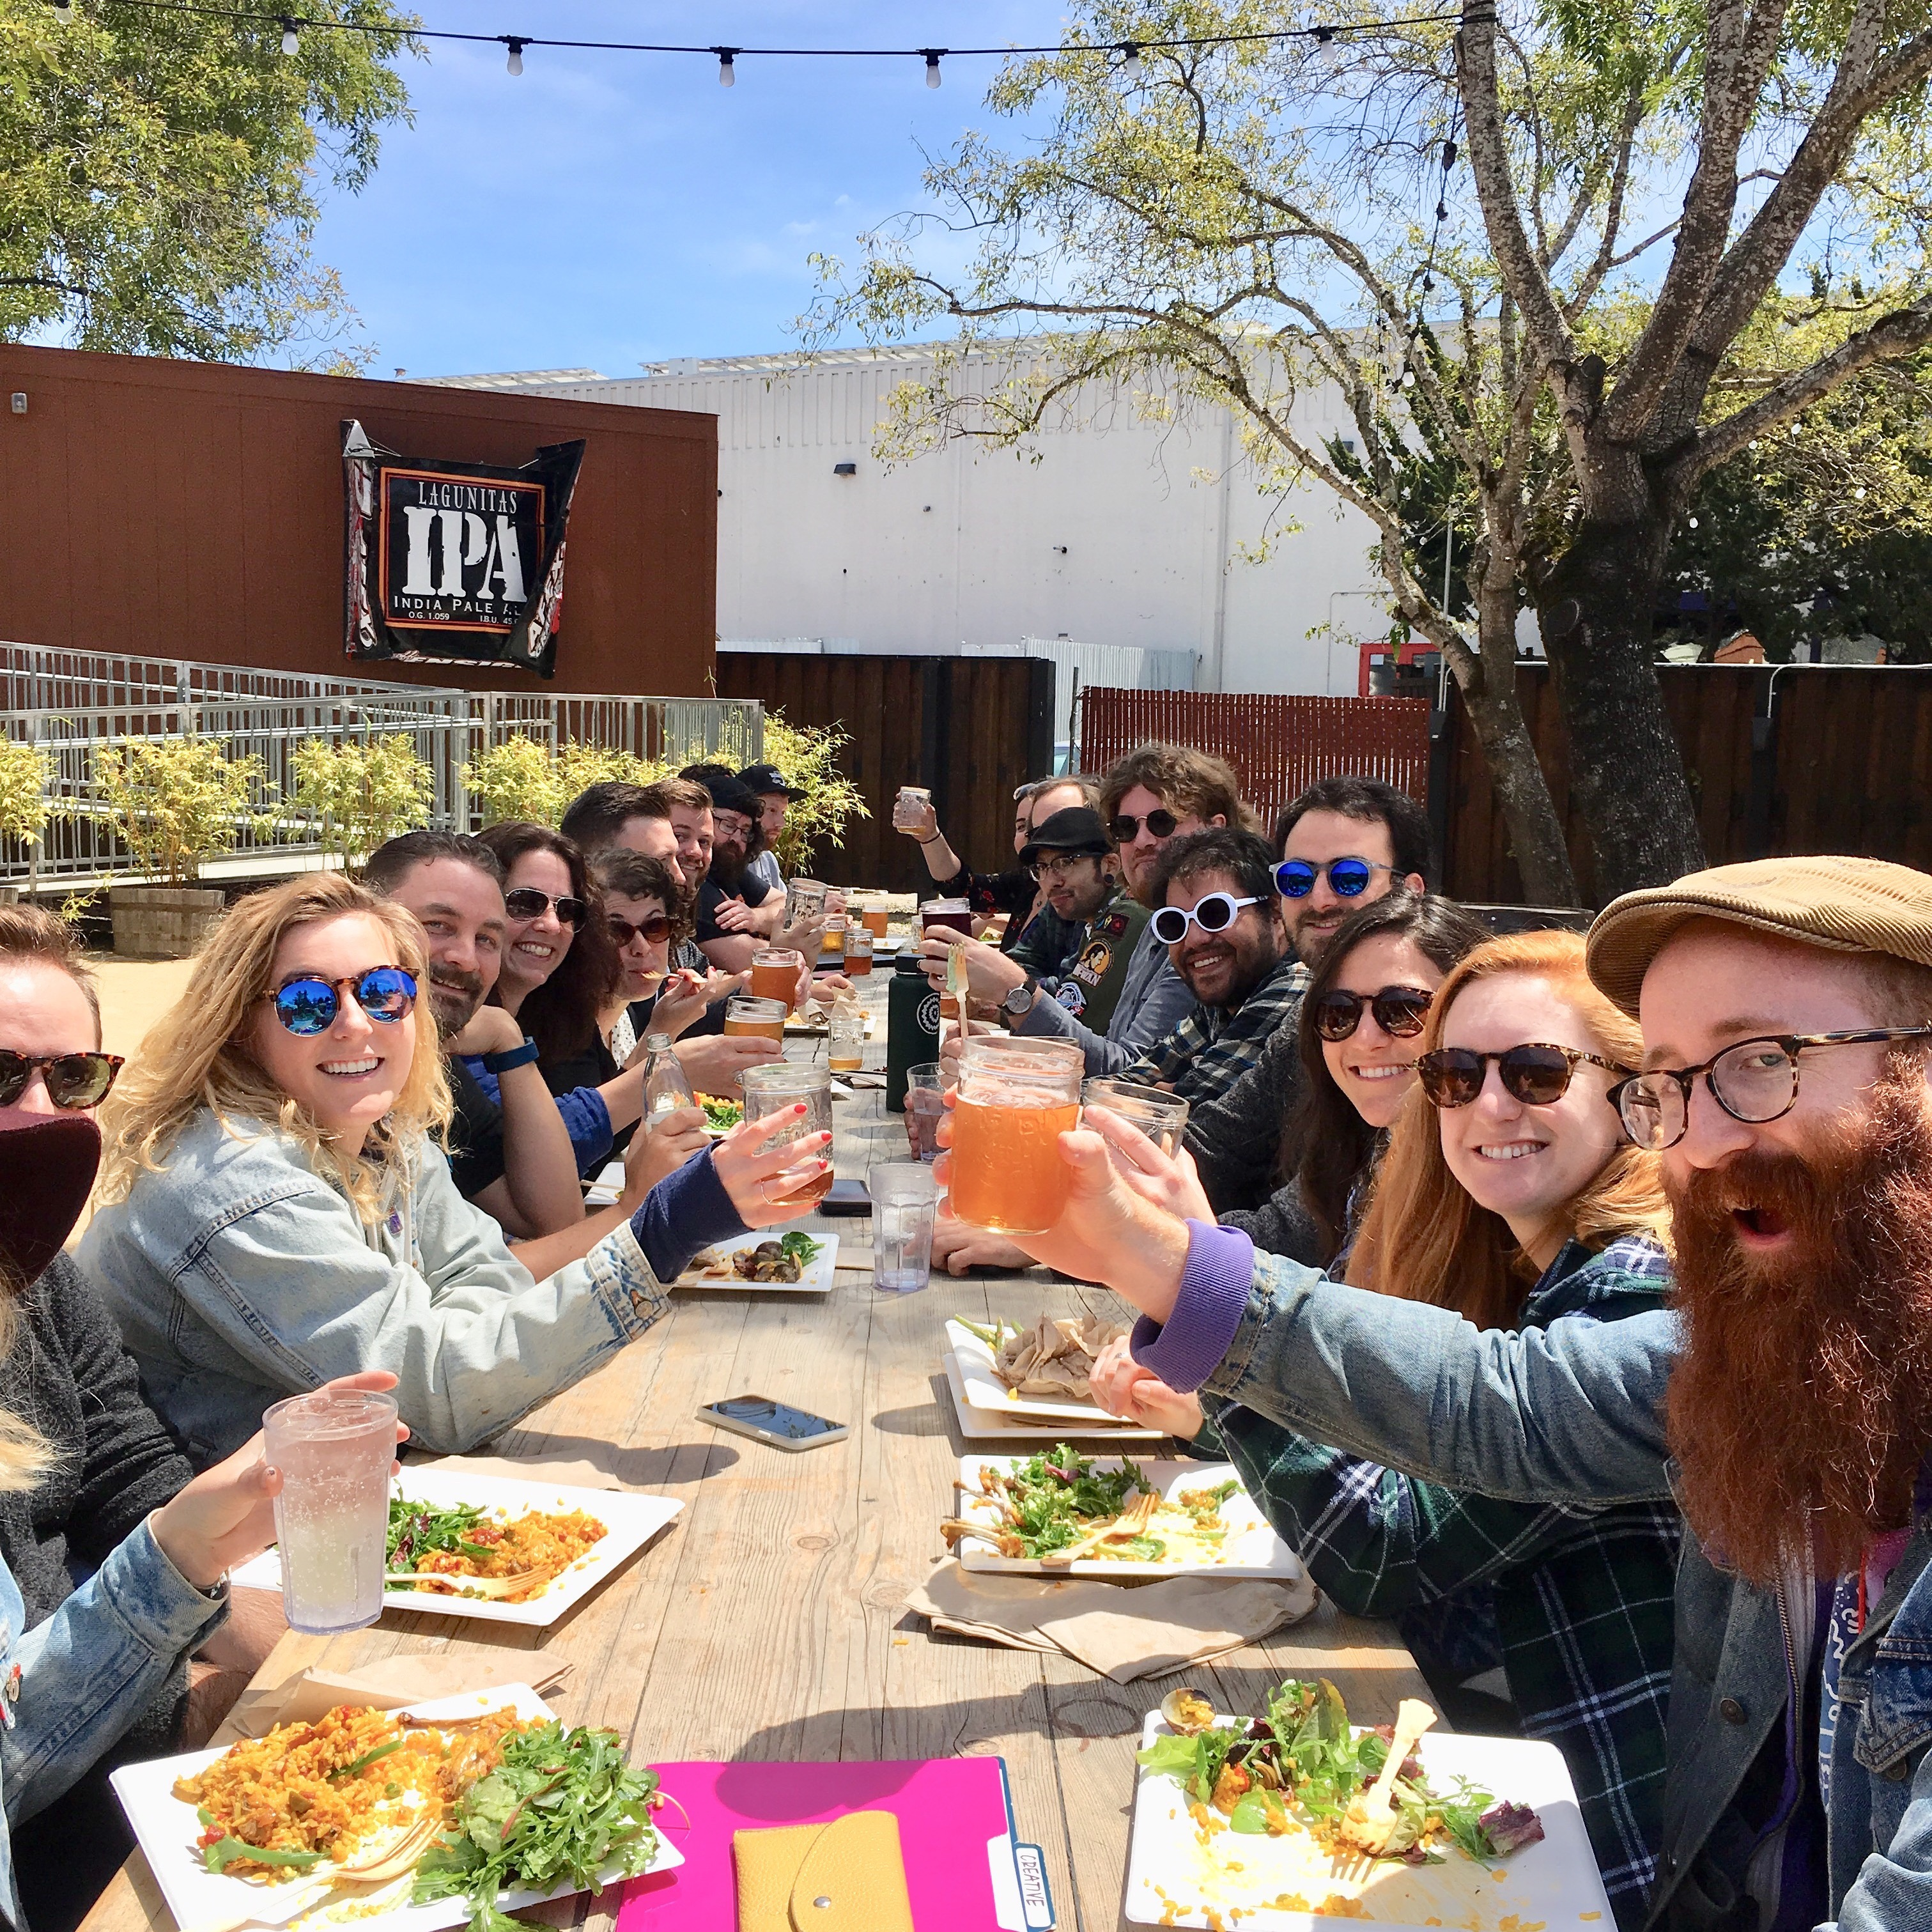 Feeding the crew at Lagunitas Brewery